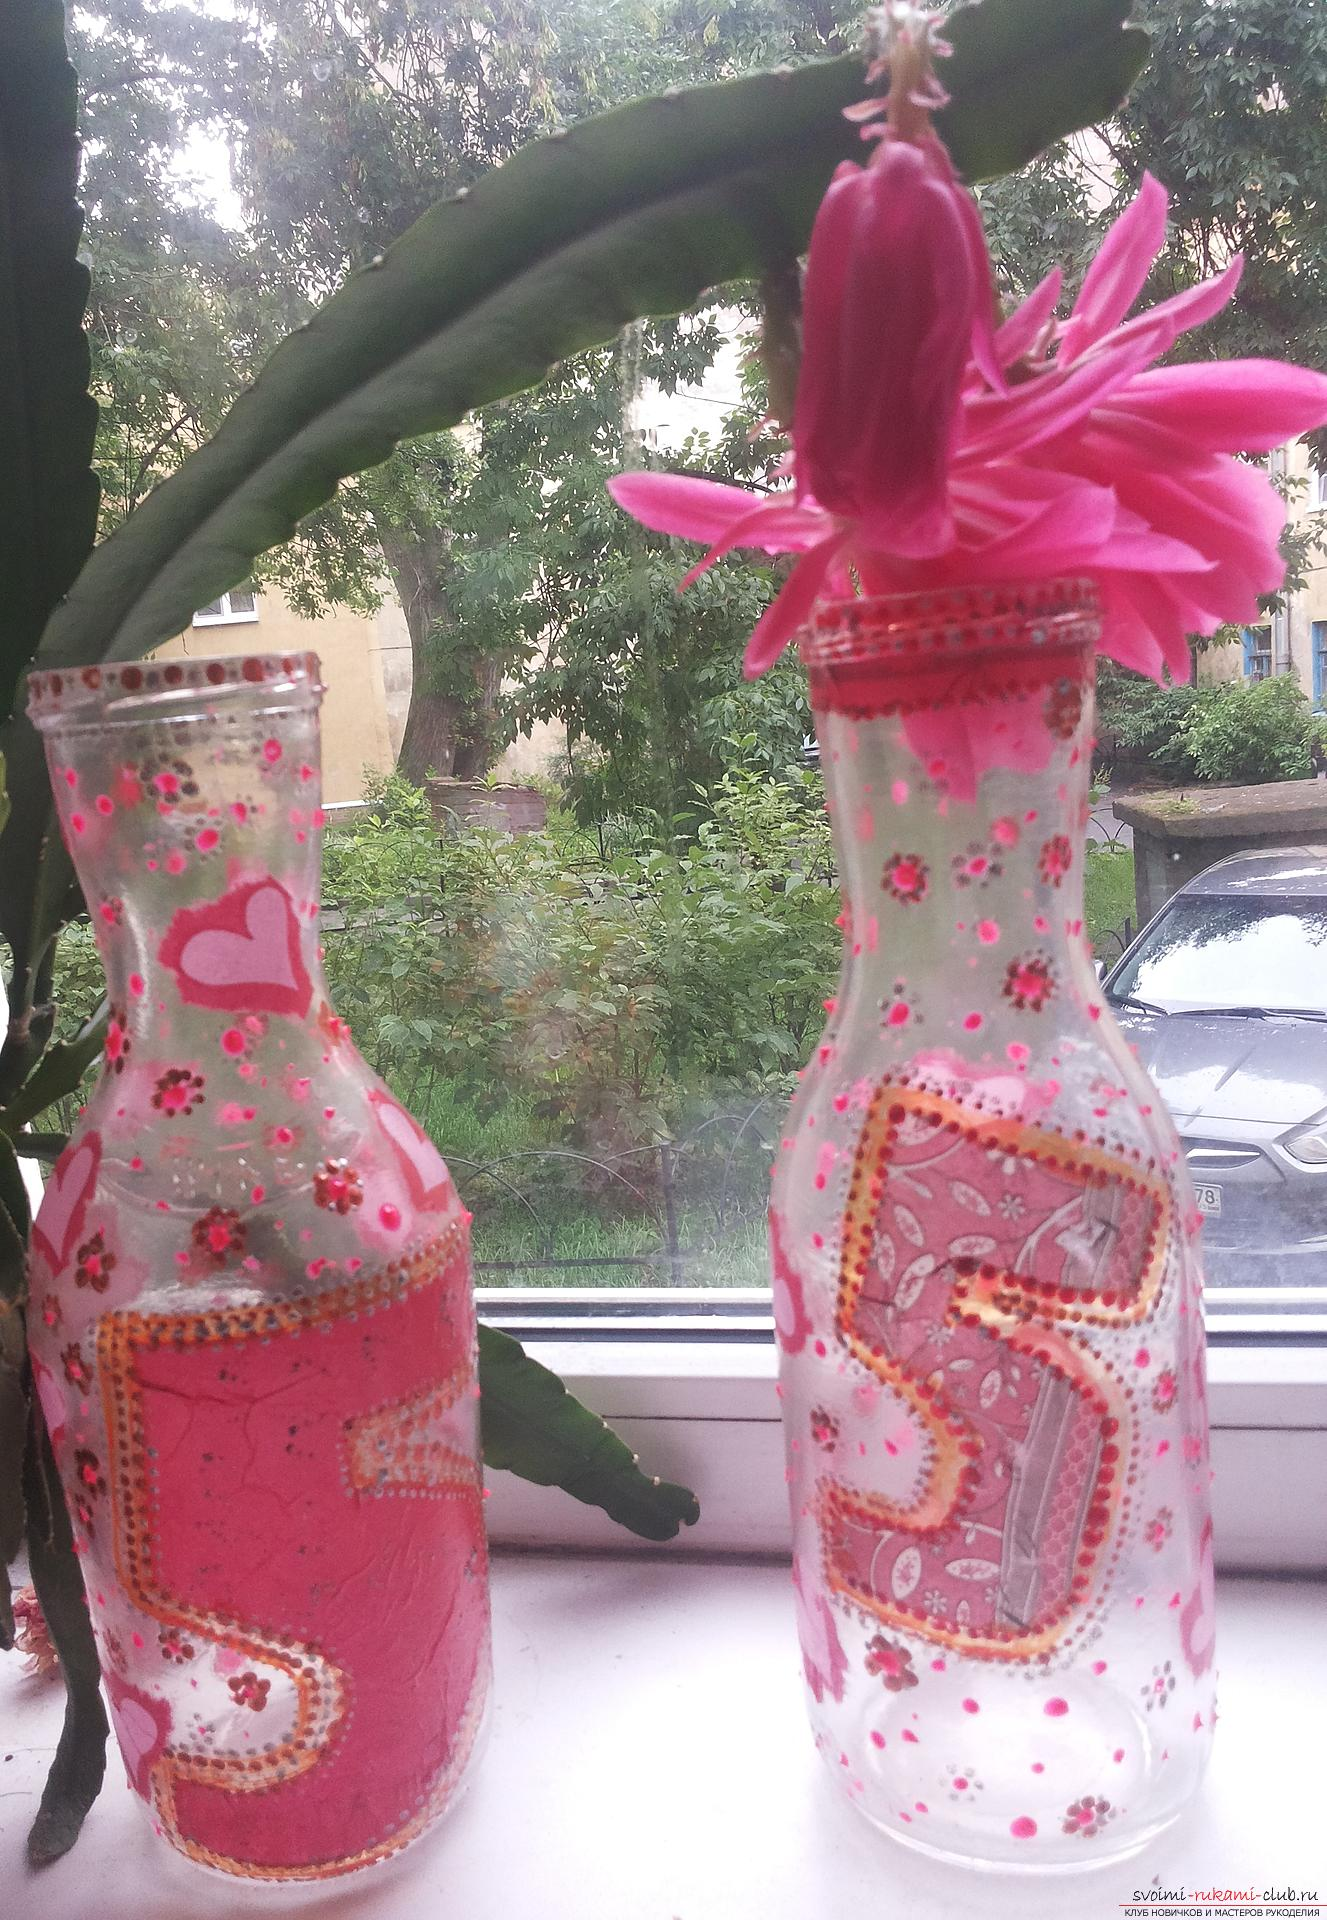 How to design glass bottles and cans by making an unusual gift. Photo №7